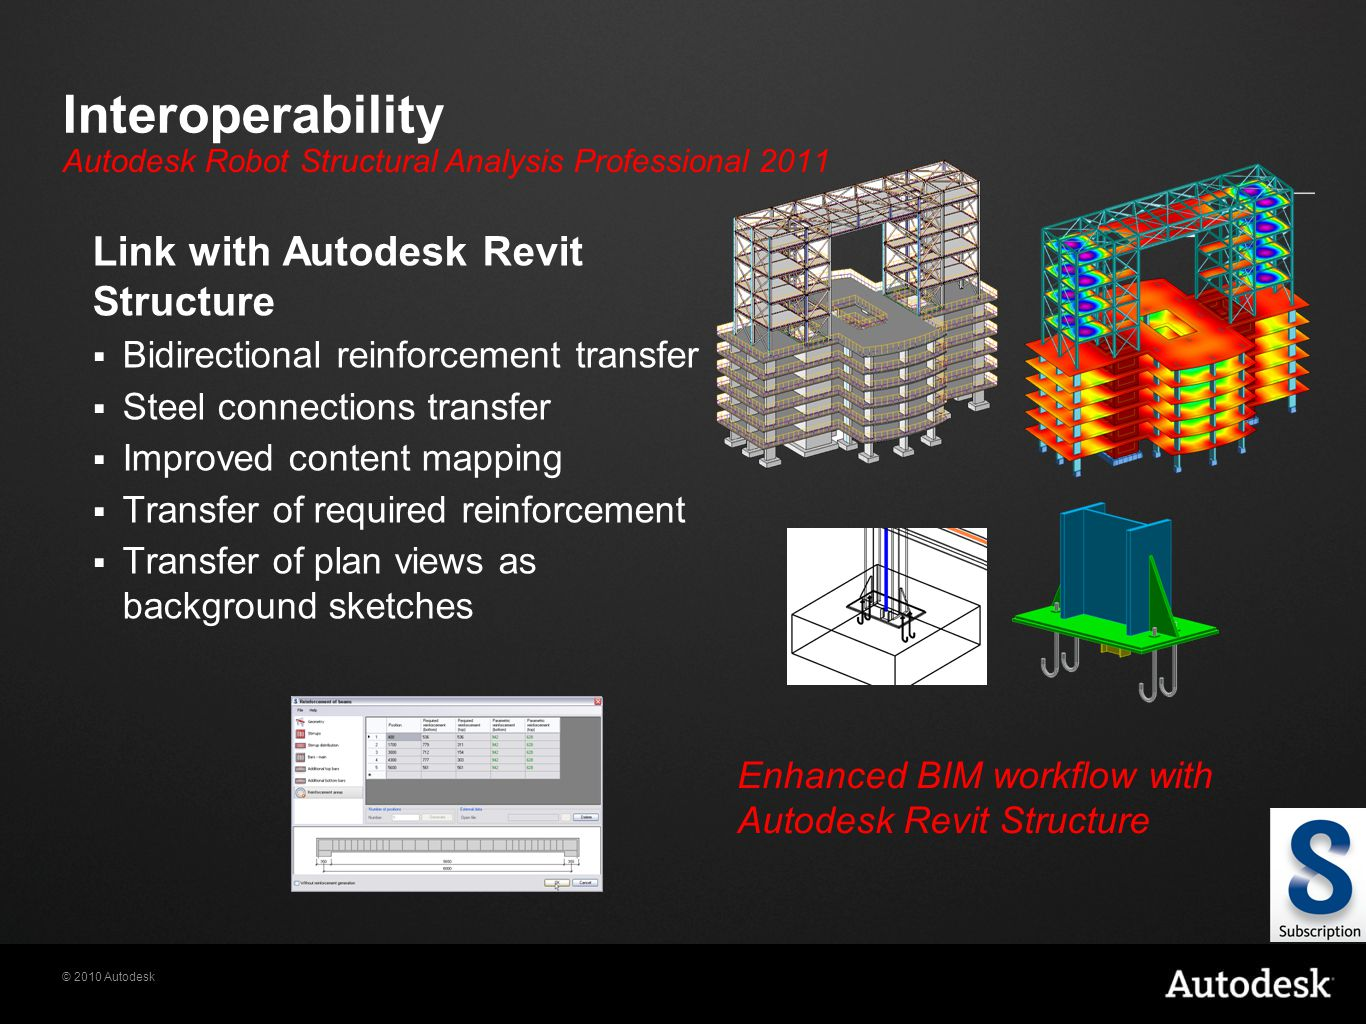 © 2010 Autodesk Interoperability Link with Autodesk Revit Structure  Bidirectional reinforcement transfer  Steel connections transfer  Improved content mapping  Transfer of required reinforcement  Transfer of plan views as background sketches Enhanced BIM workflow with Autodesk Revit Structure Autodesk Robot Structural Analysis Professional 2011